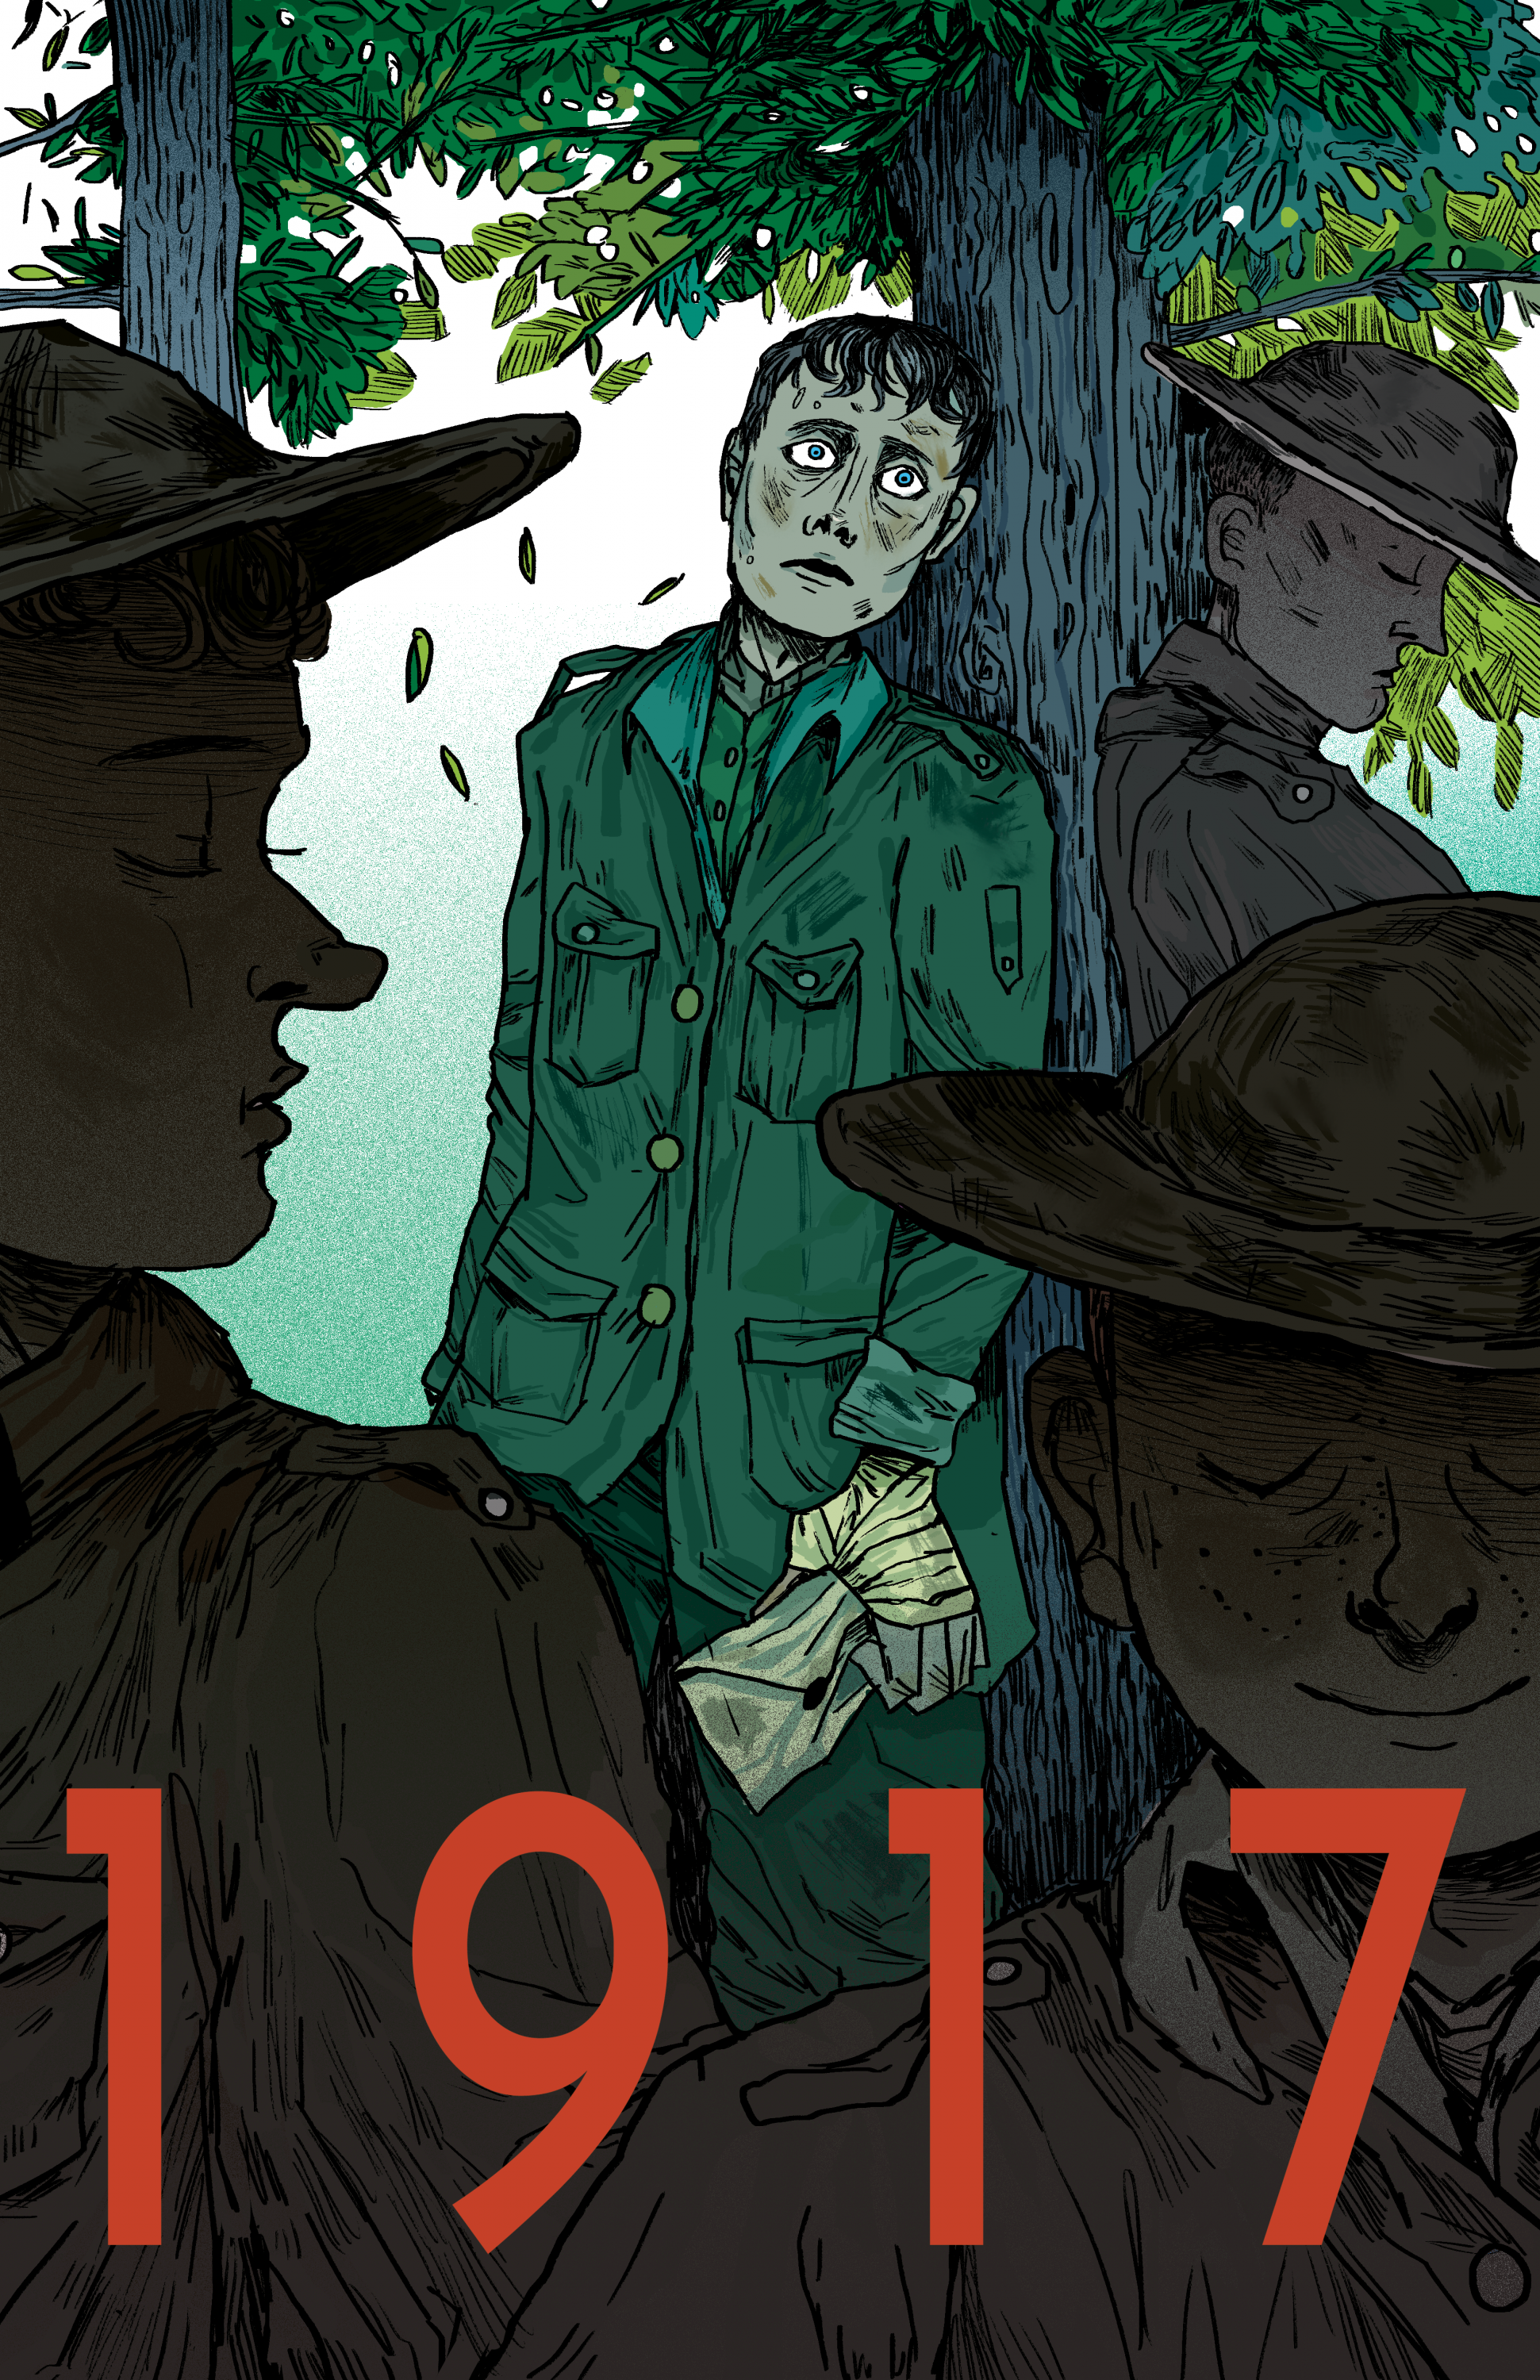 A soldier leans against a tree and stares at the reader with a haunted expression. Around him are other soldiers, looking off in different directions. They are shaded darker than the one against the tree.